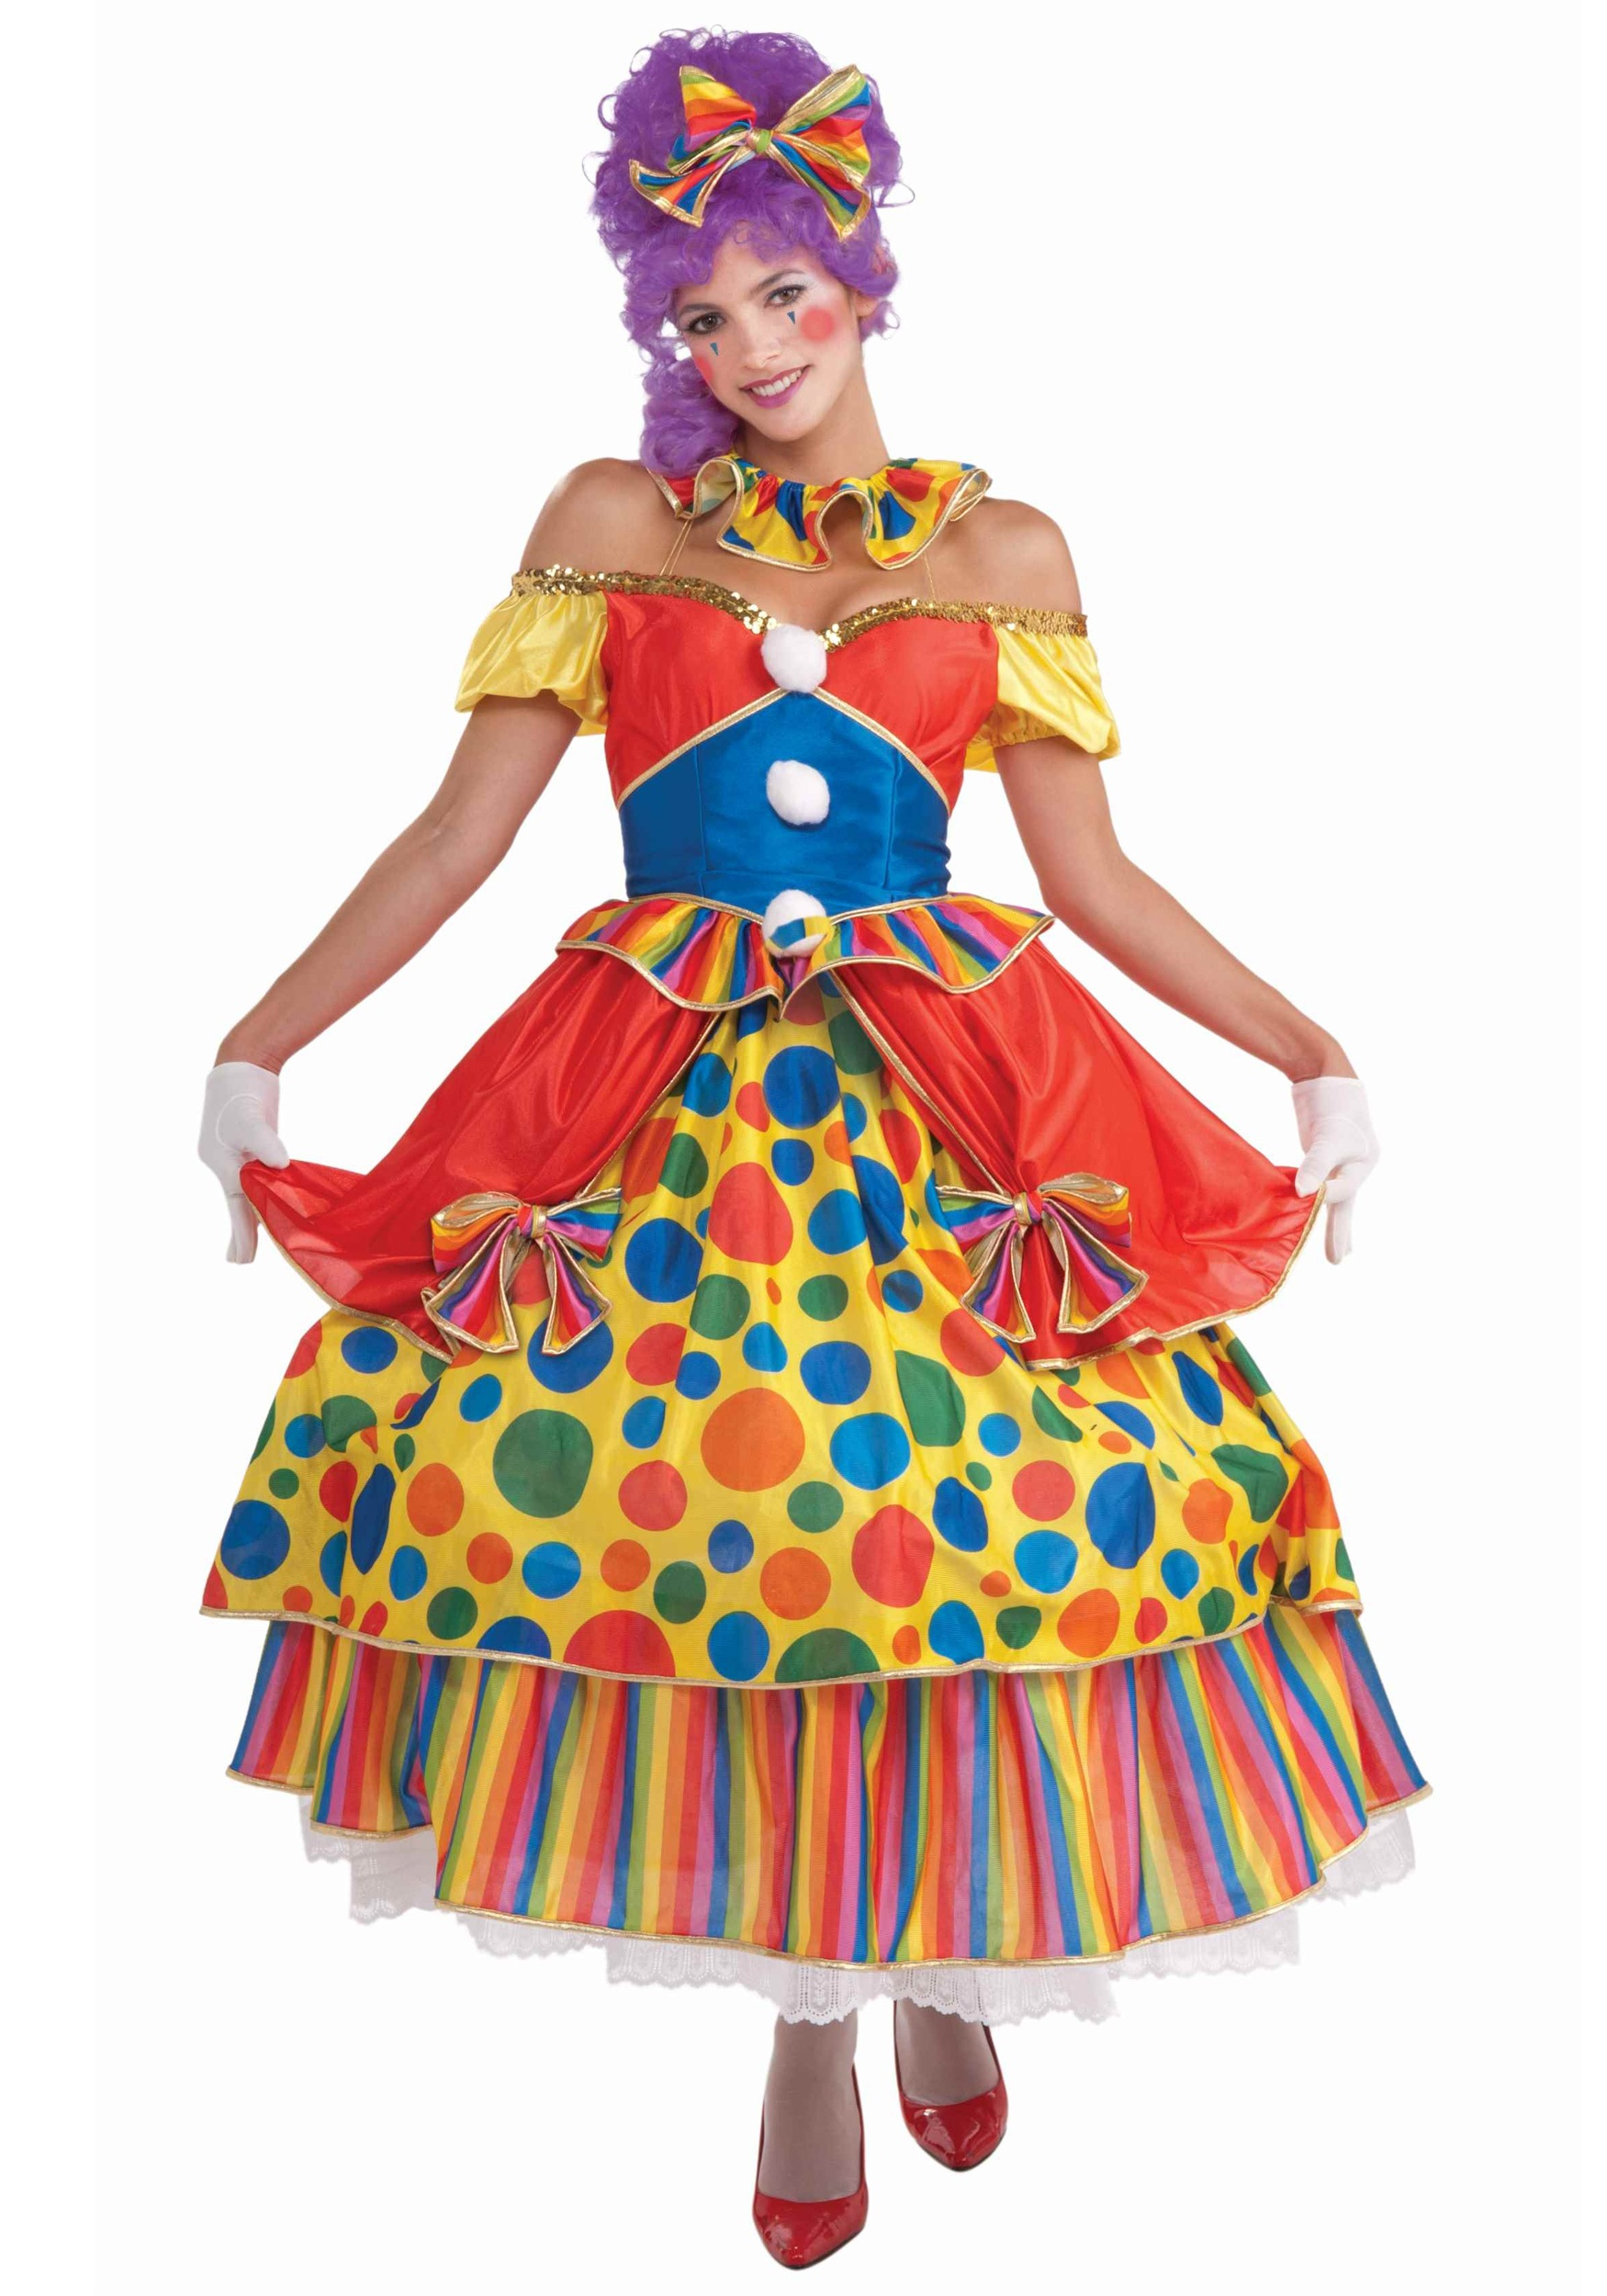 Womens Hoop-dress Clown Costume  sc 1 st  Halloween Costume & Womens Hoop-dress Clown Costume - Cute Clown Costume Ideas